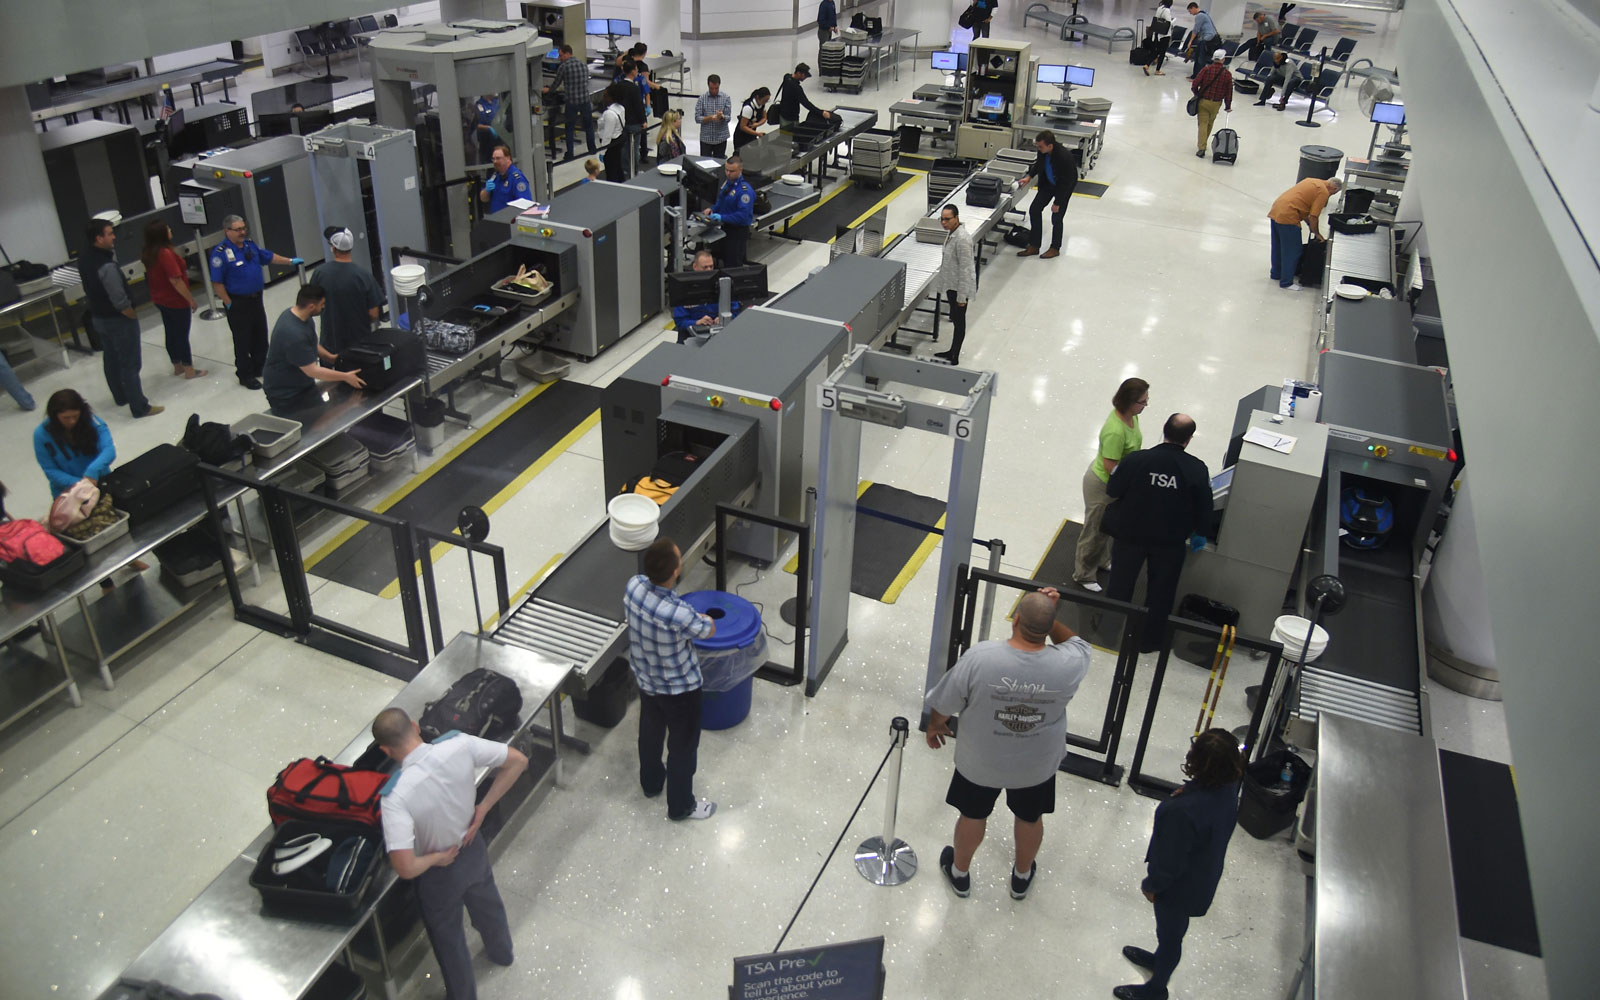 Get ready to remove all electronics larger than a cellphone from your carry-on for the TSA